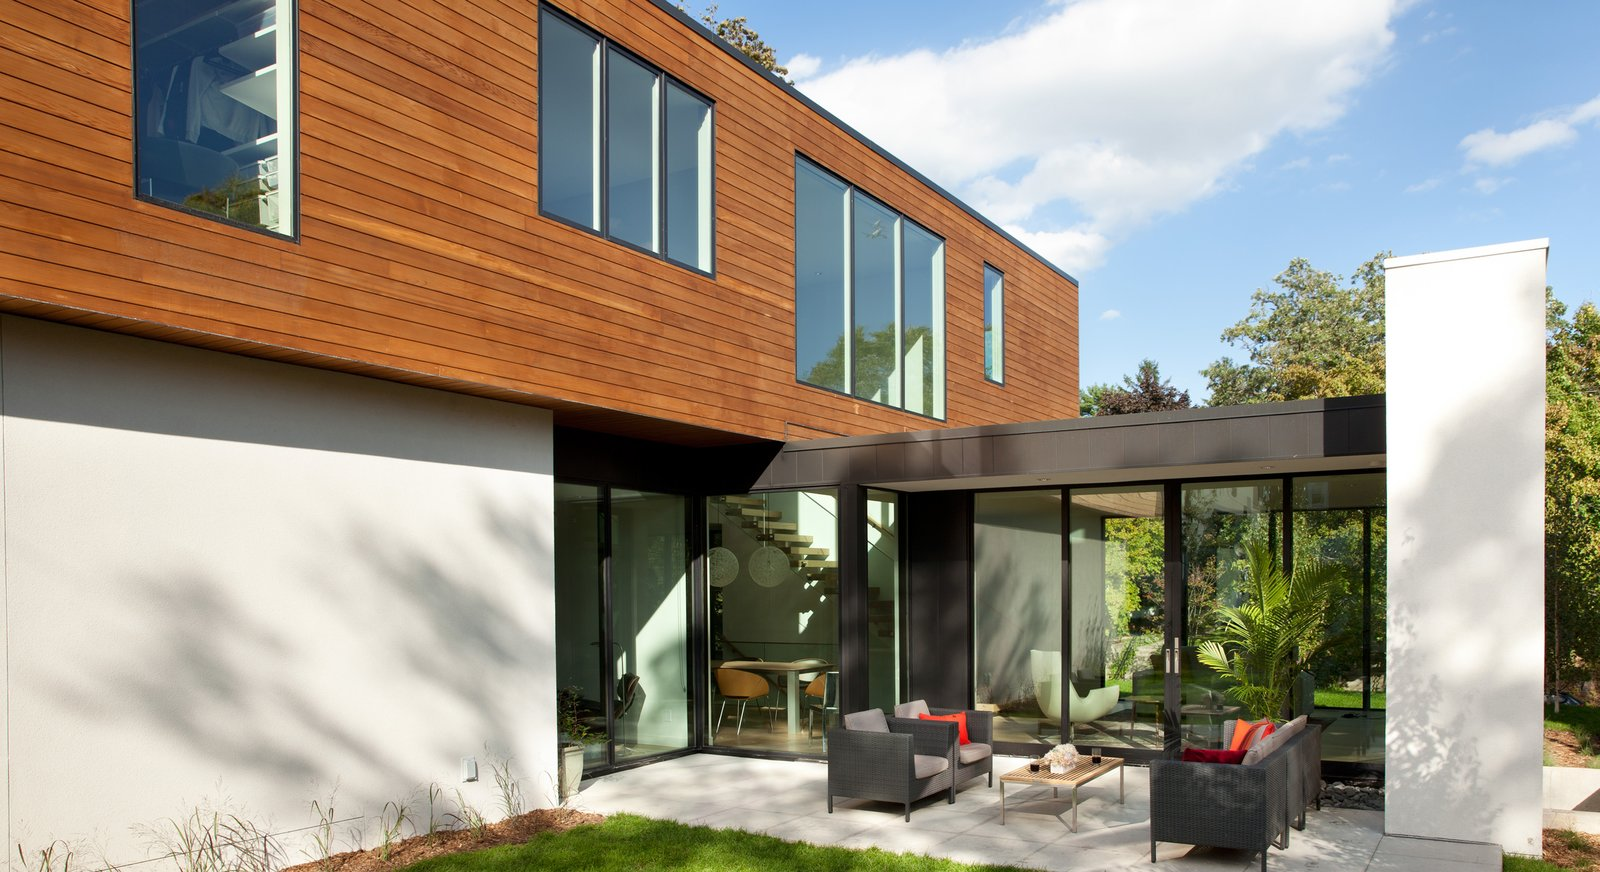 Tagged: Outdoor, Back Yard, Wood Patio, Porch, Deck, Metal Patio, Porch, Deck, and Pavers Patio, Porch, Deck.  Sheridan Residence by Peterssen/Keller Architecture